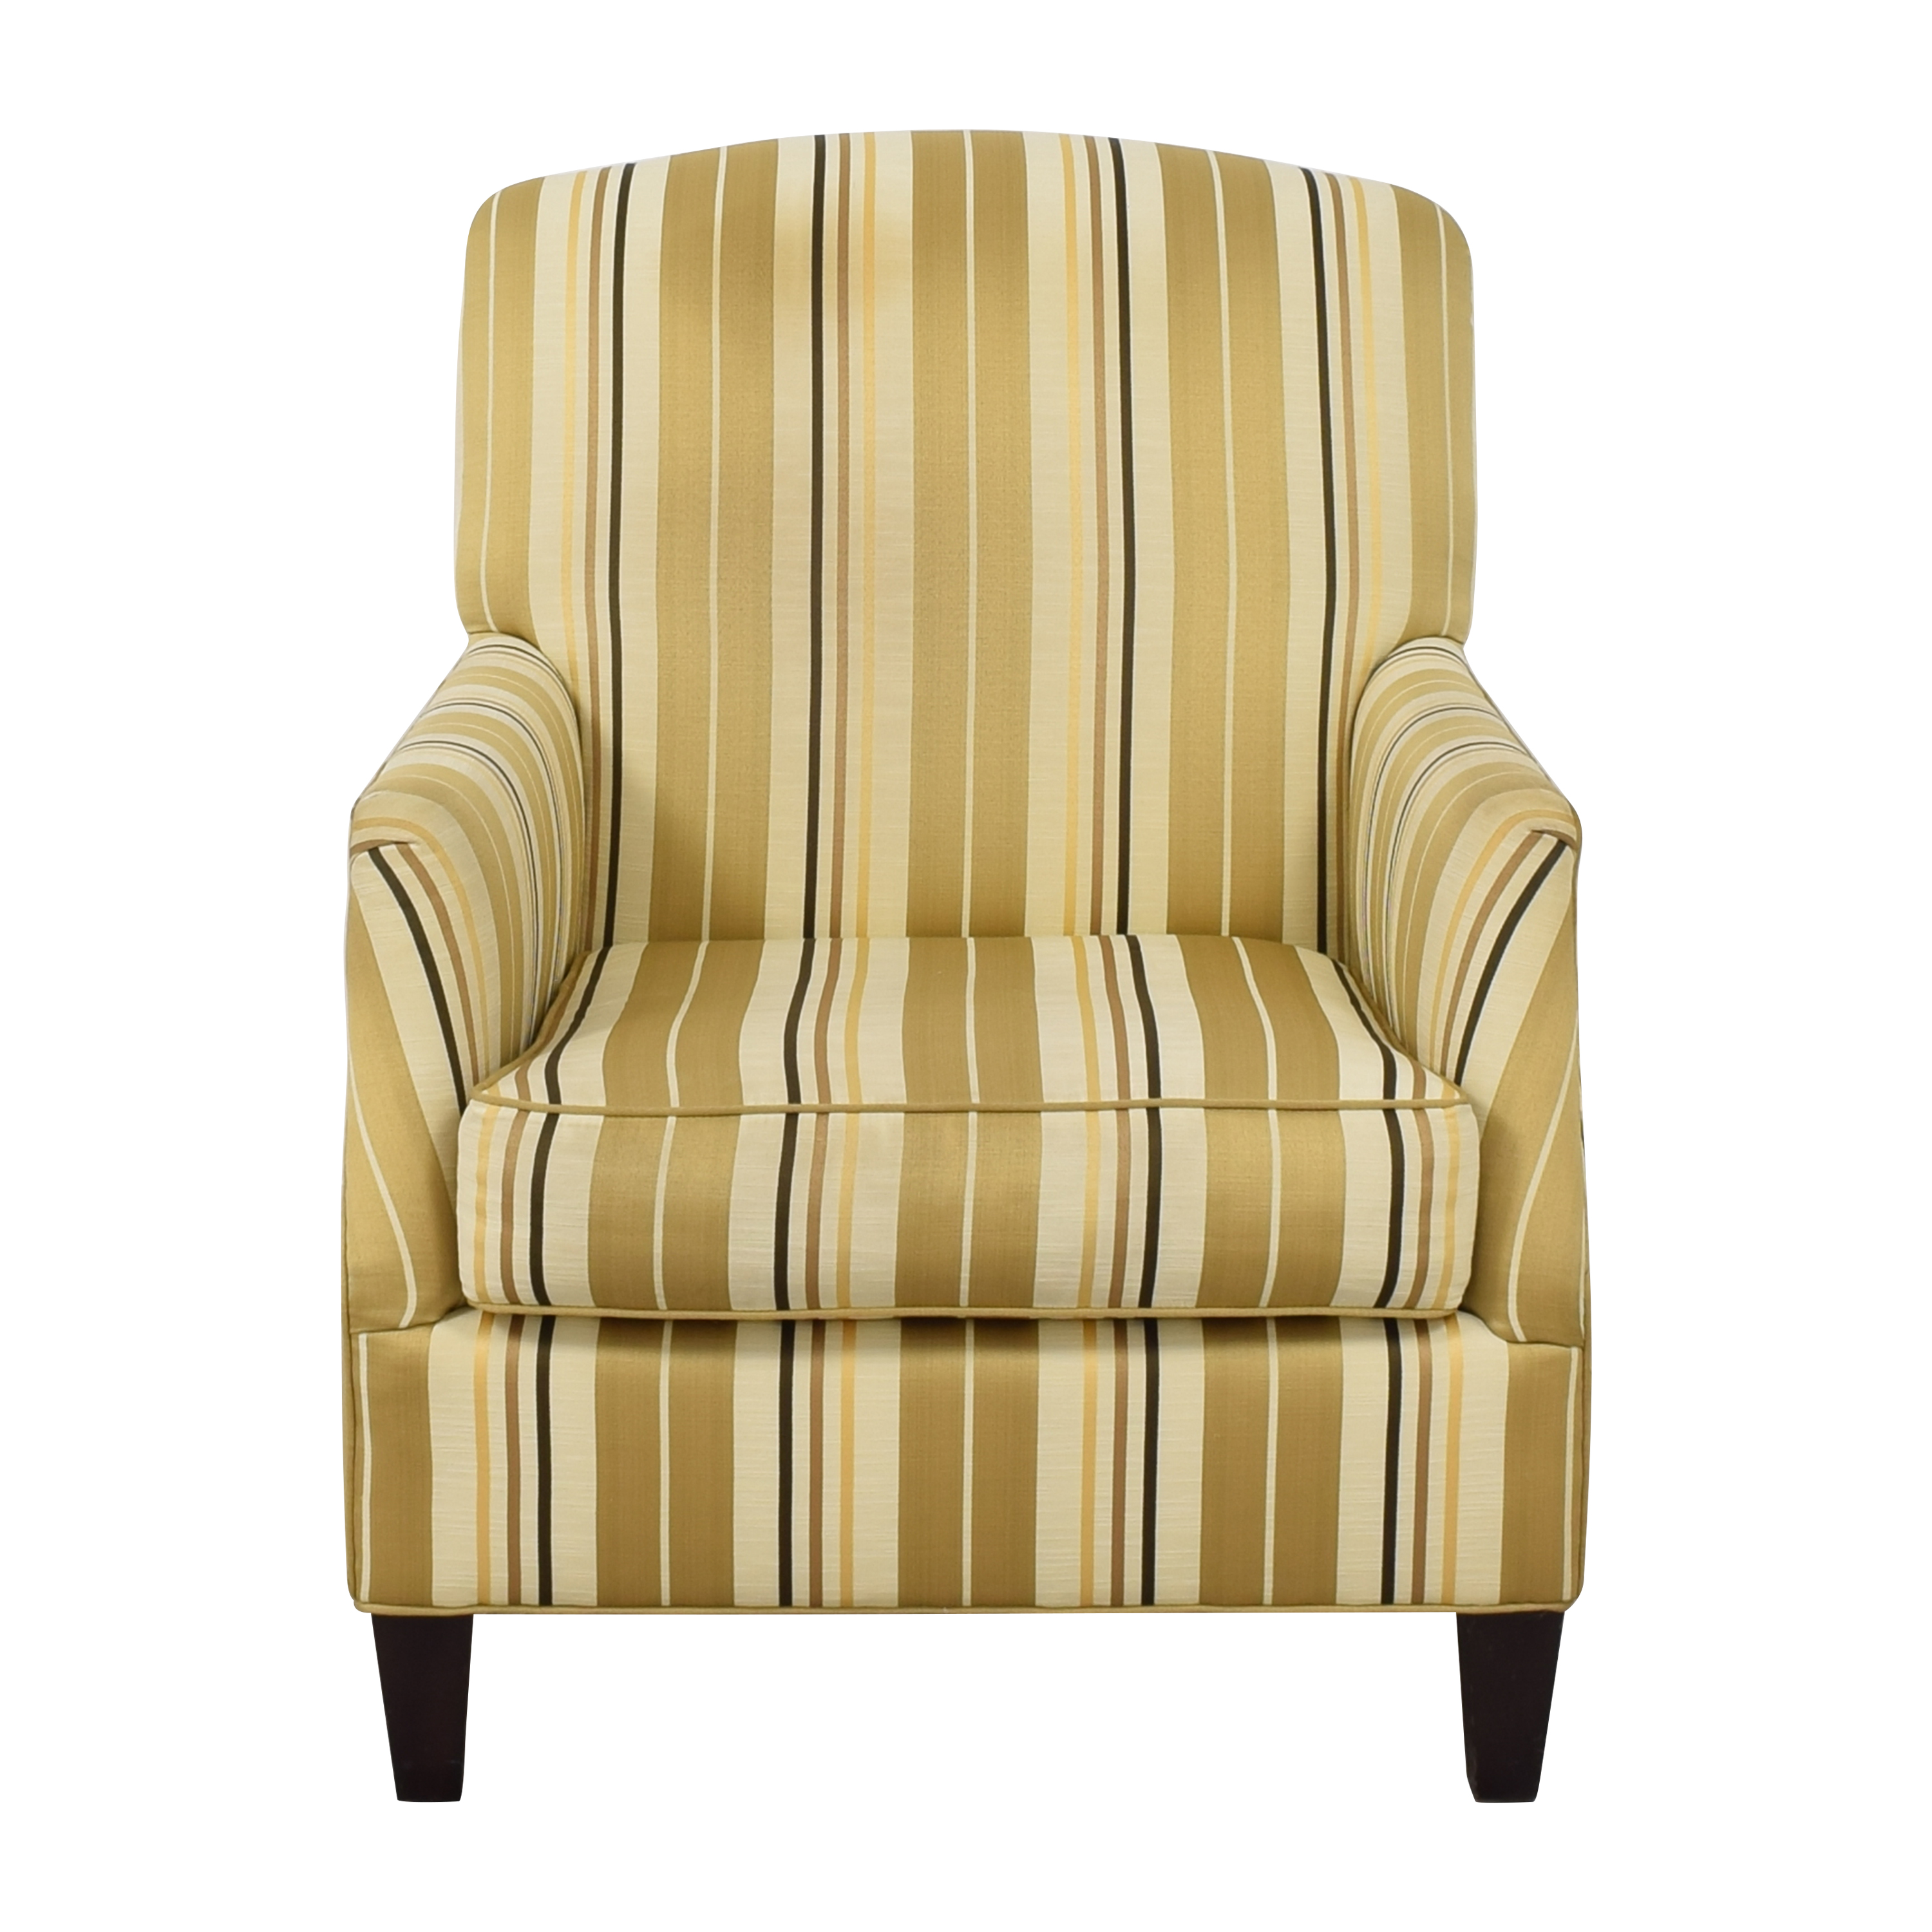 Striped Accent Chair on sale